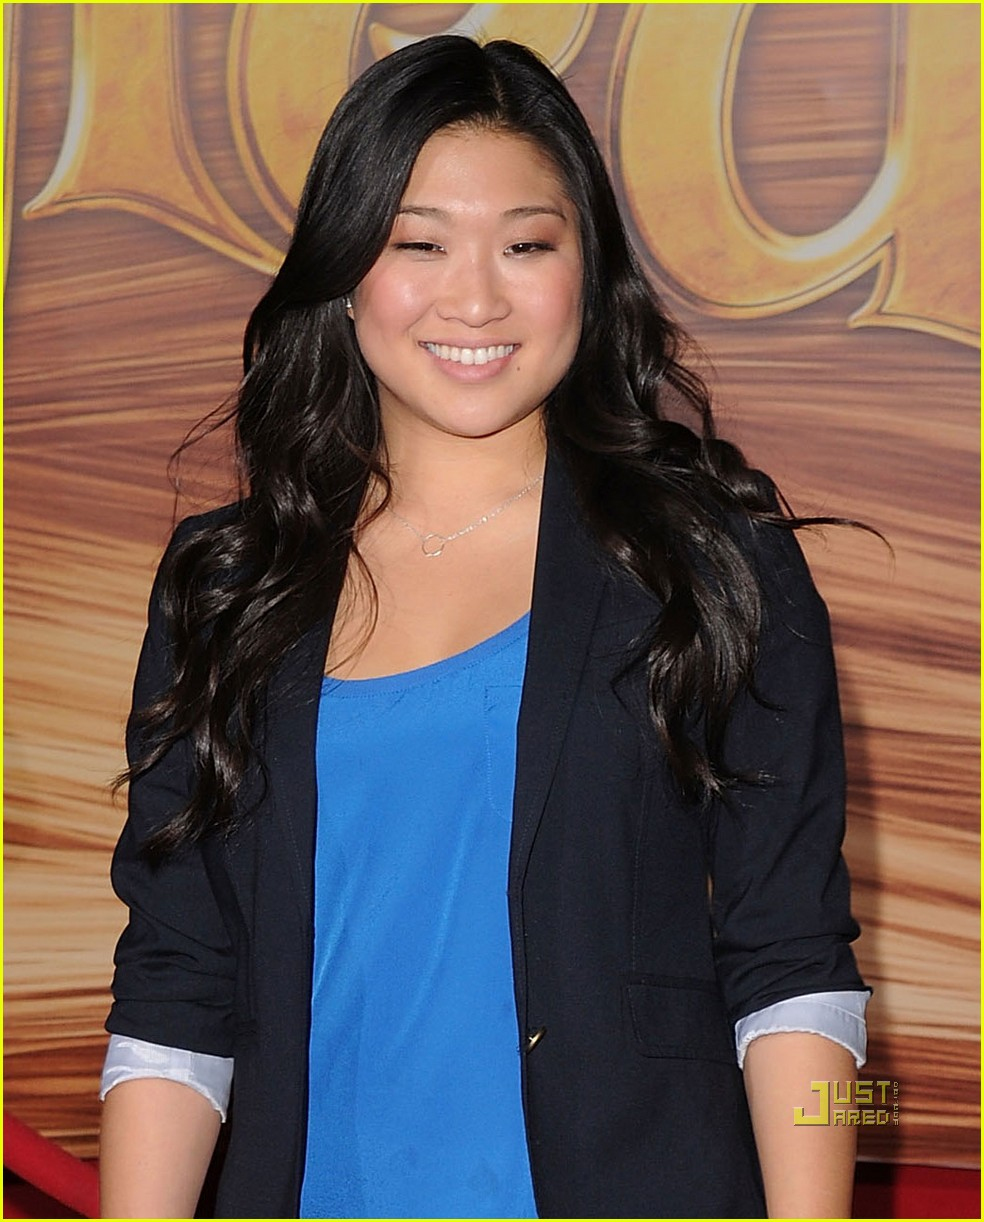 jenna ushkowitz dating history Get all your jenna ushkowitz news and gossip here related: lea michele is dating izombie's robert buckley naya rivera dorsey, jenna ushkowitz, and kevin mchale all stopped by the w hollywood hotel on saturday night to ring in the wiz live star's big day while reminiscing about their musical past at the same.